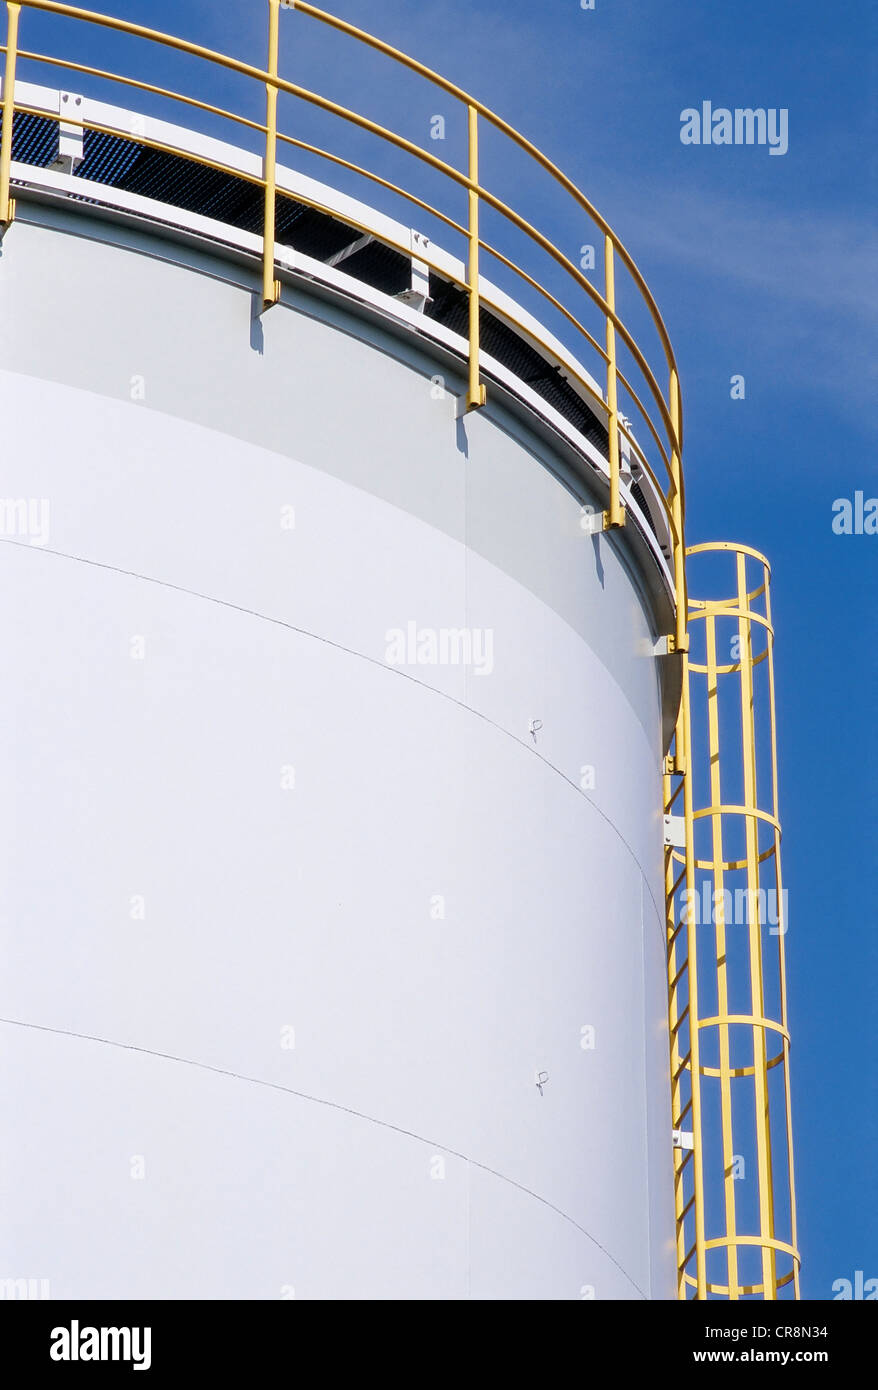 Tank containing hydrochloric acid, Chempark Krefeld-Uerdingen industrial park, formerly known as Bayer Industry - Stock Image